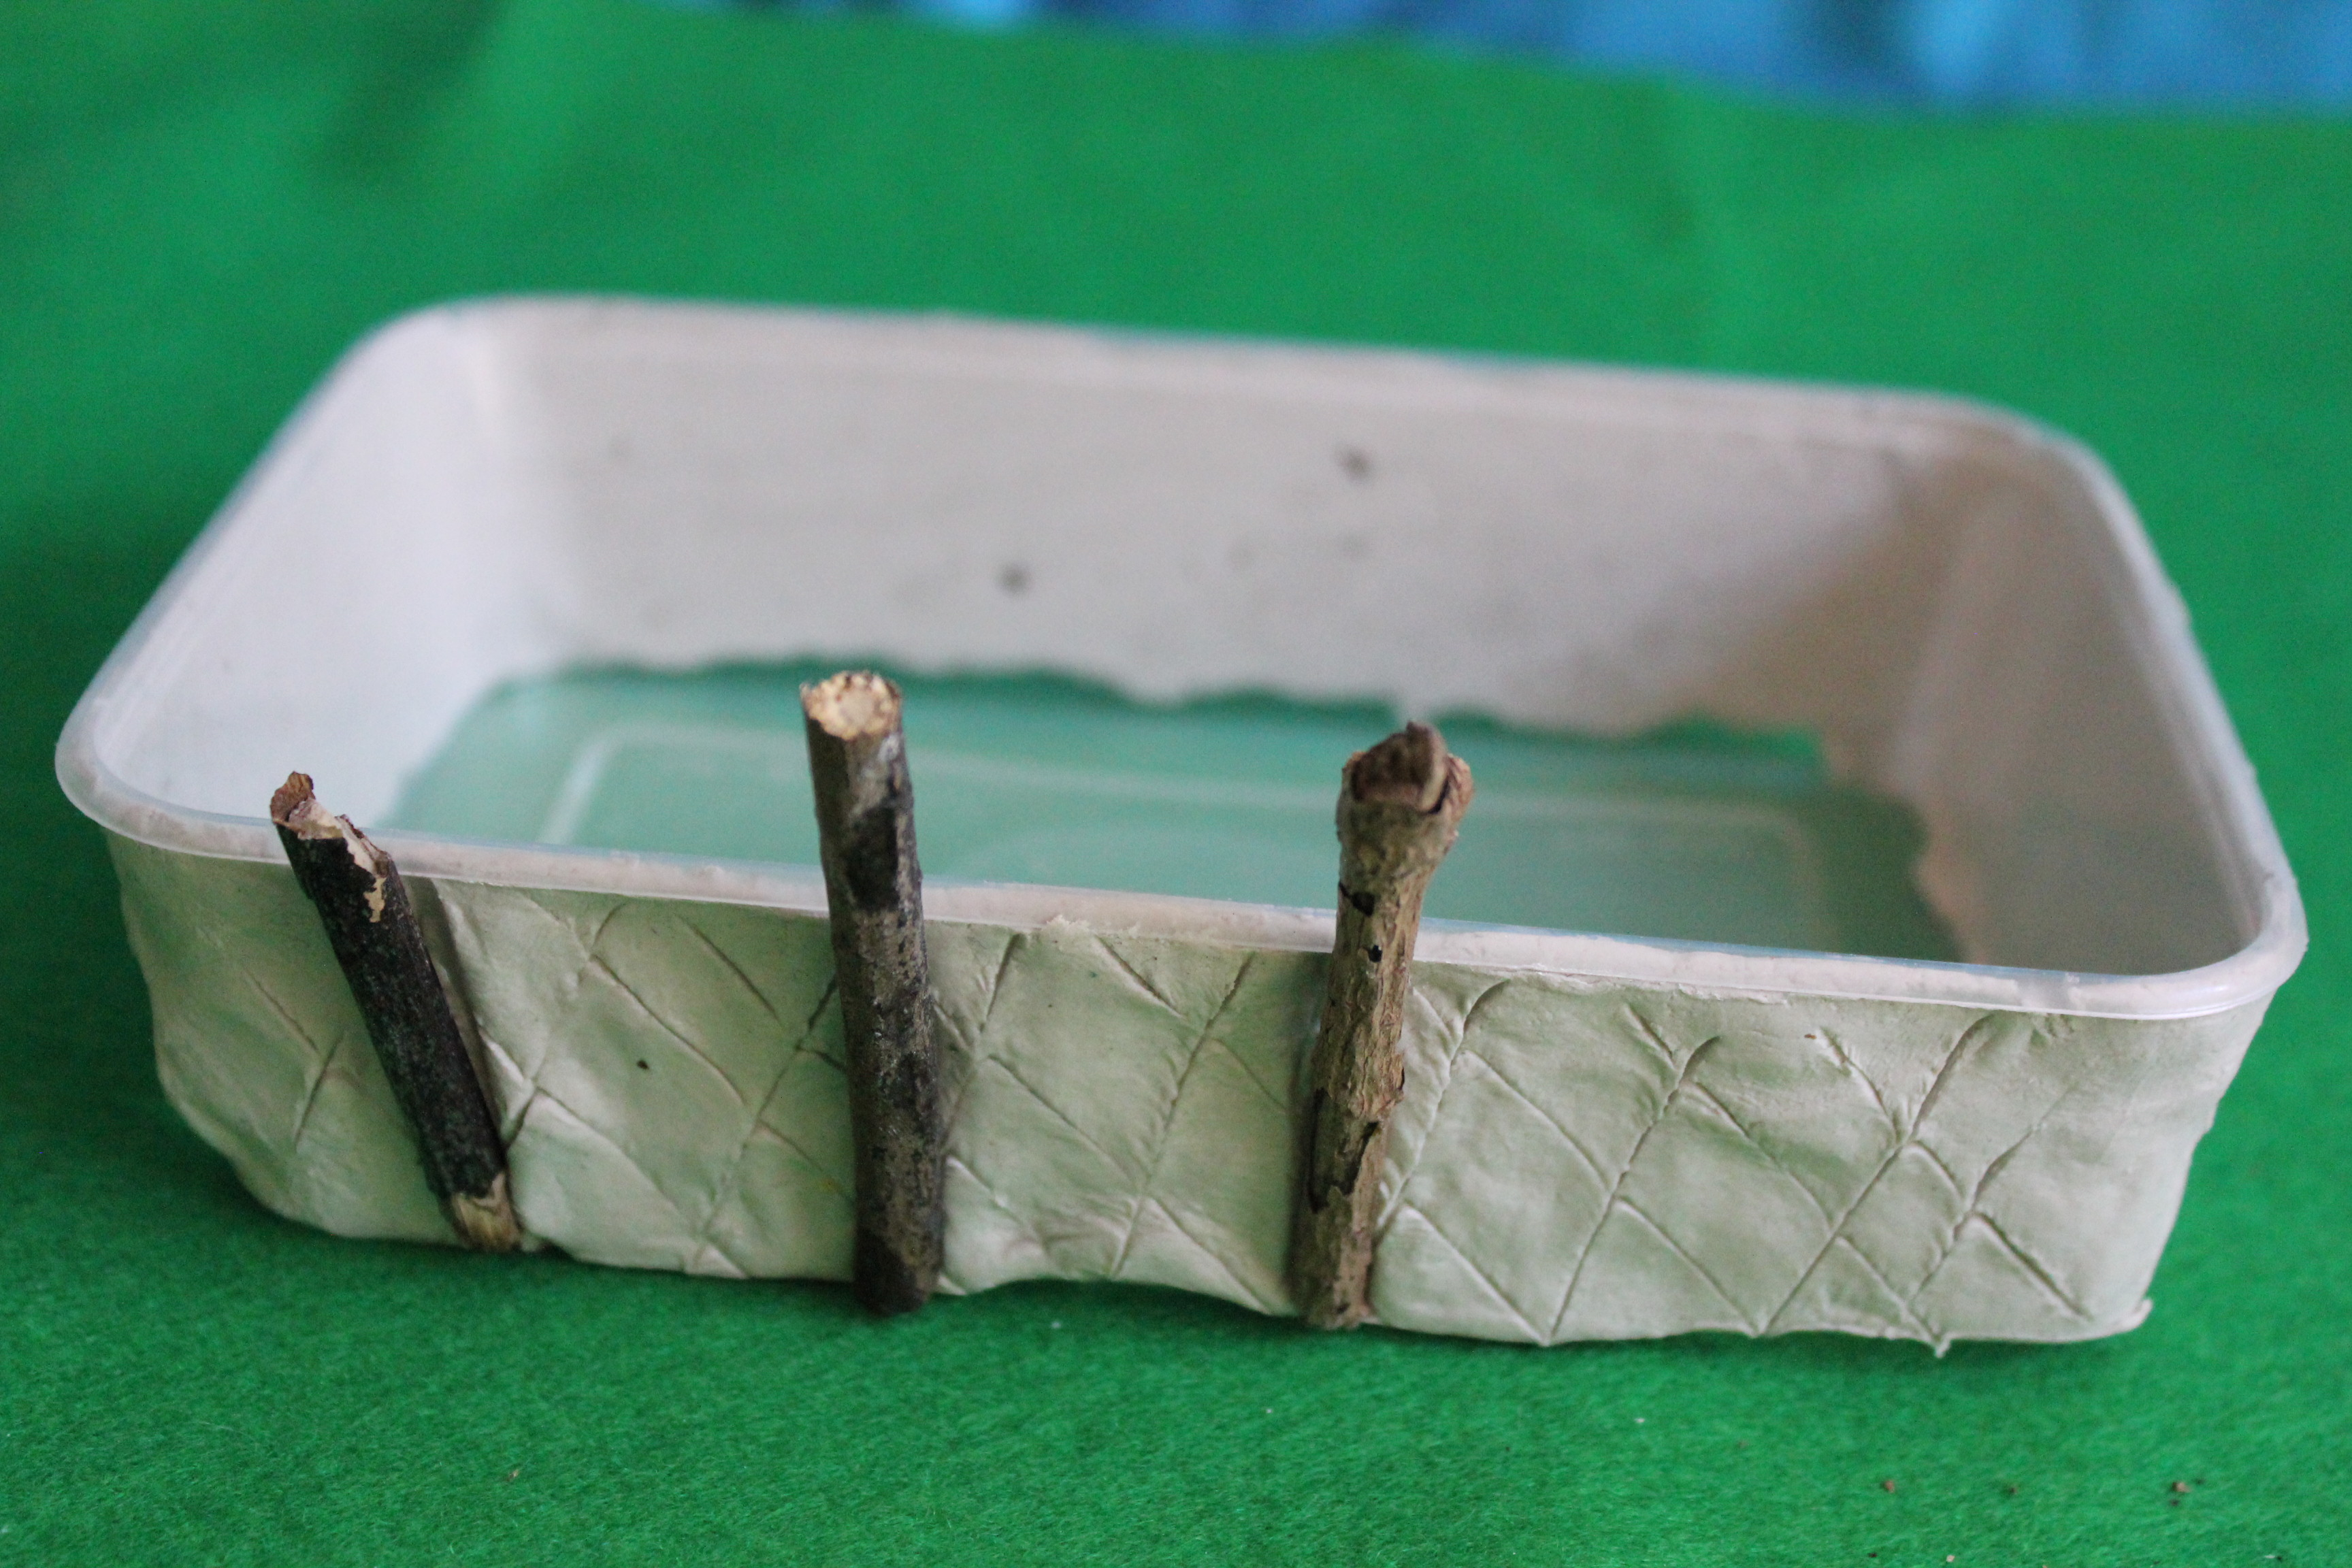 Flatten the clay into a strip and wrap the around the edge of your box. Make light crisscross cuts all along the clay. Brush the clay with some water on your fingers. Break twigs and push into clay.